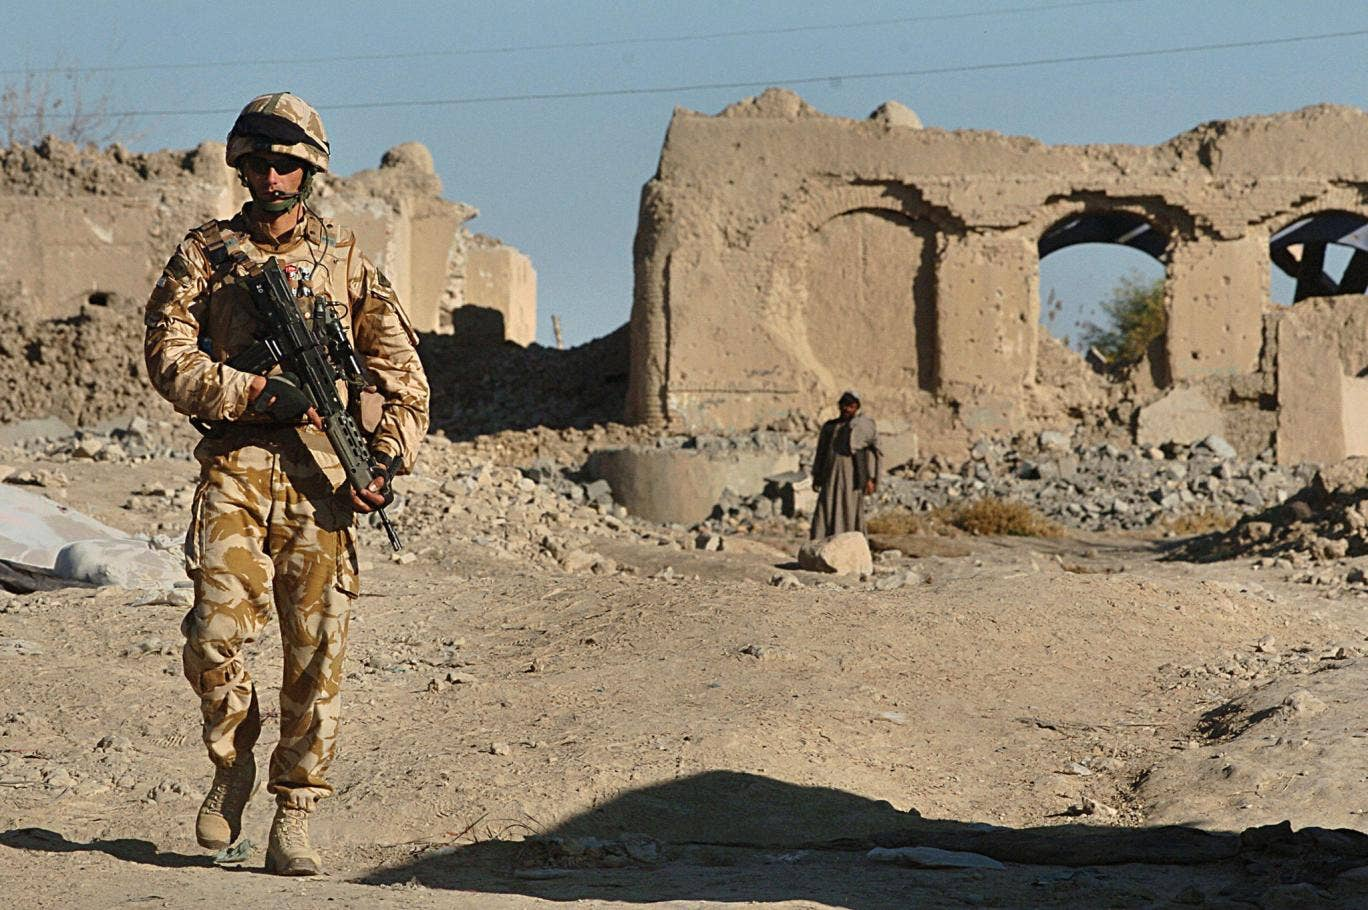 Human cost of war: A British soldier on patrol in Helmand province